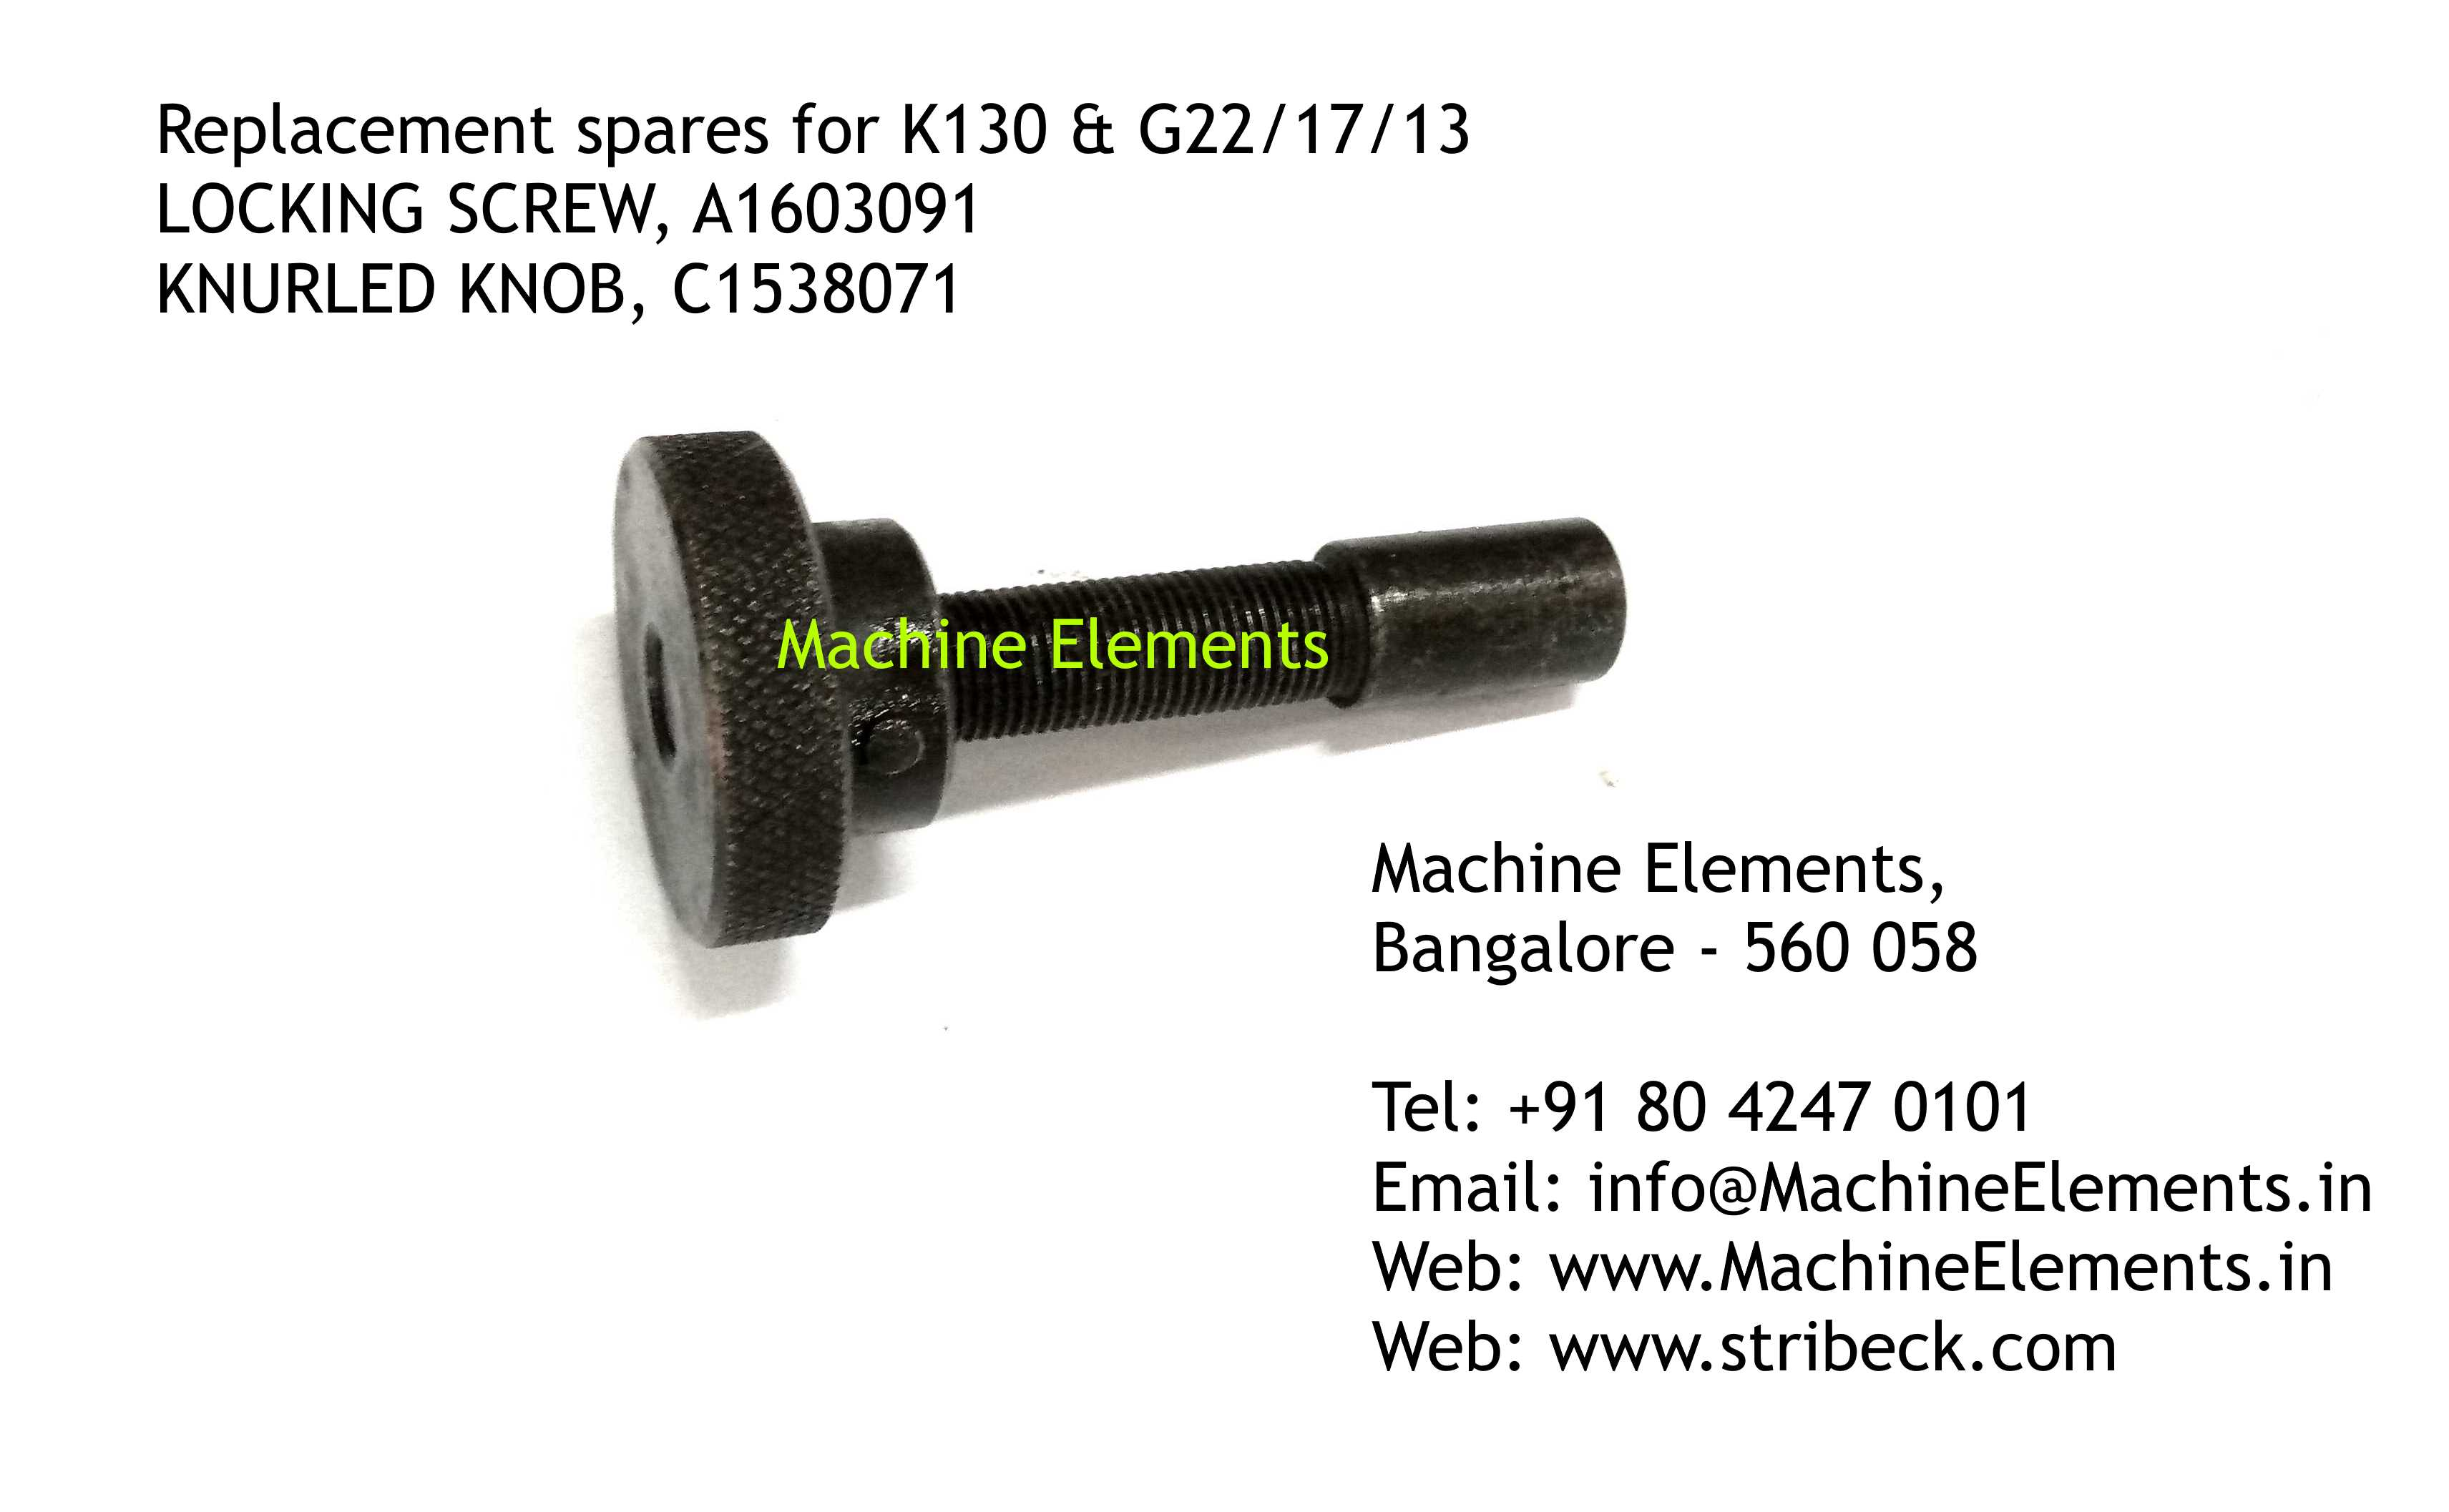 LOCKING SCREW A1603091, KNURLED KNOB C15